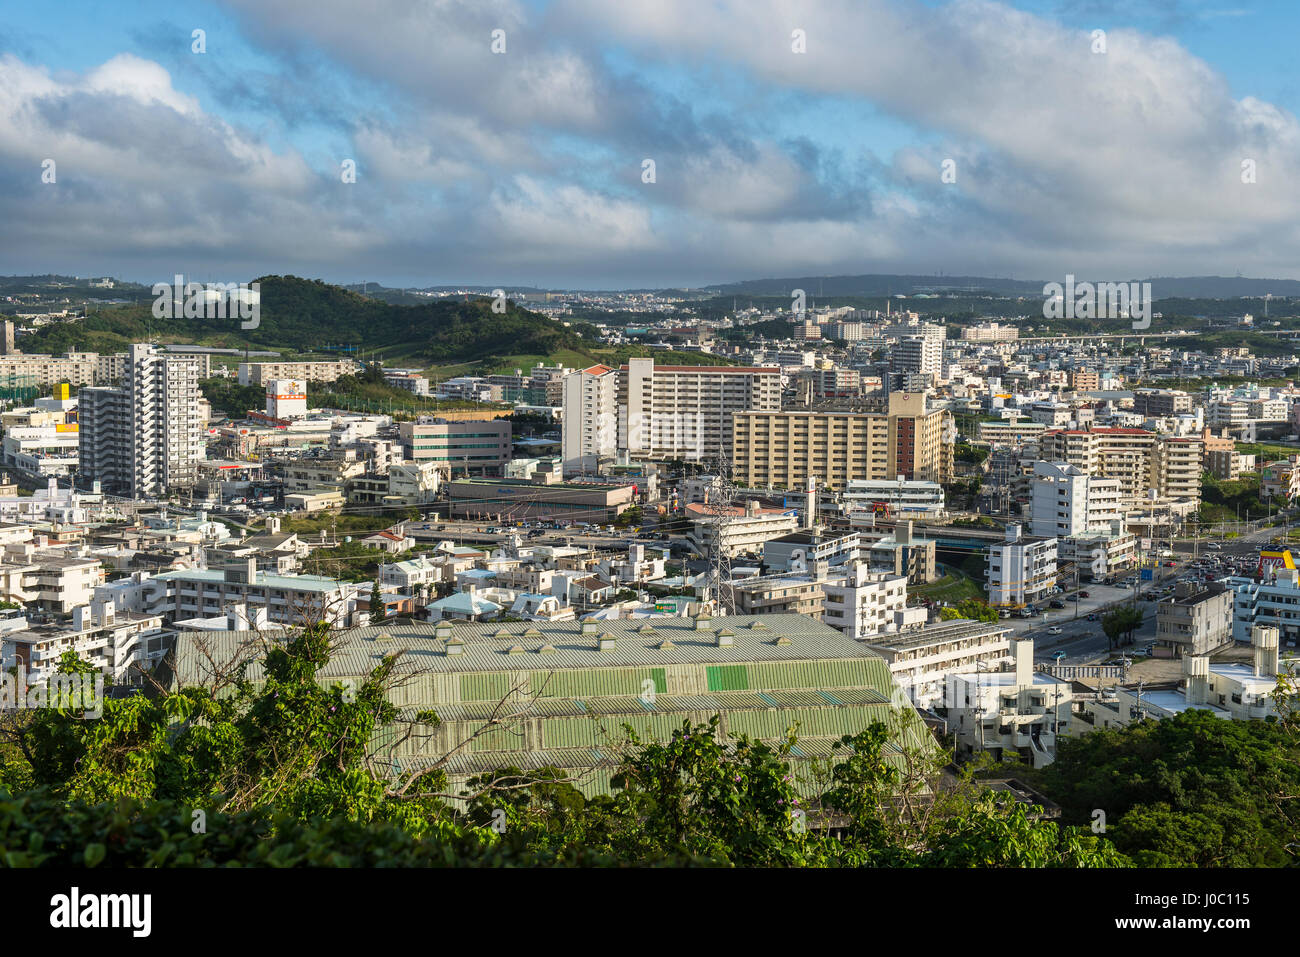 View over Naha from the Shikinaen Garden (Shikina-en Garden), UNESCO World Heritage Site, Naha, Okinawa, Japan, Stock Photo